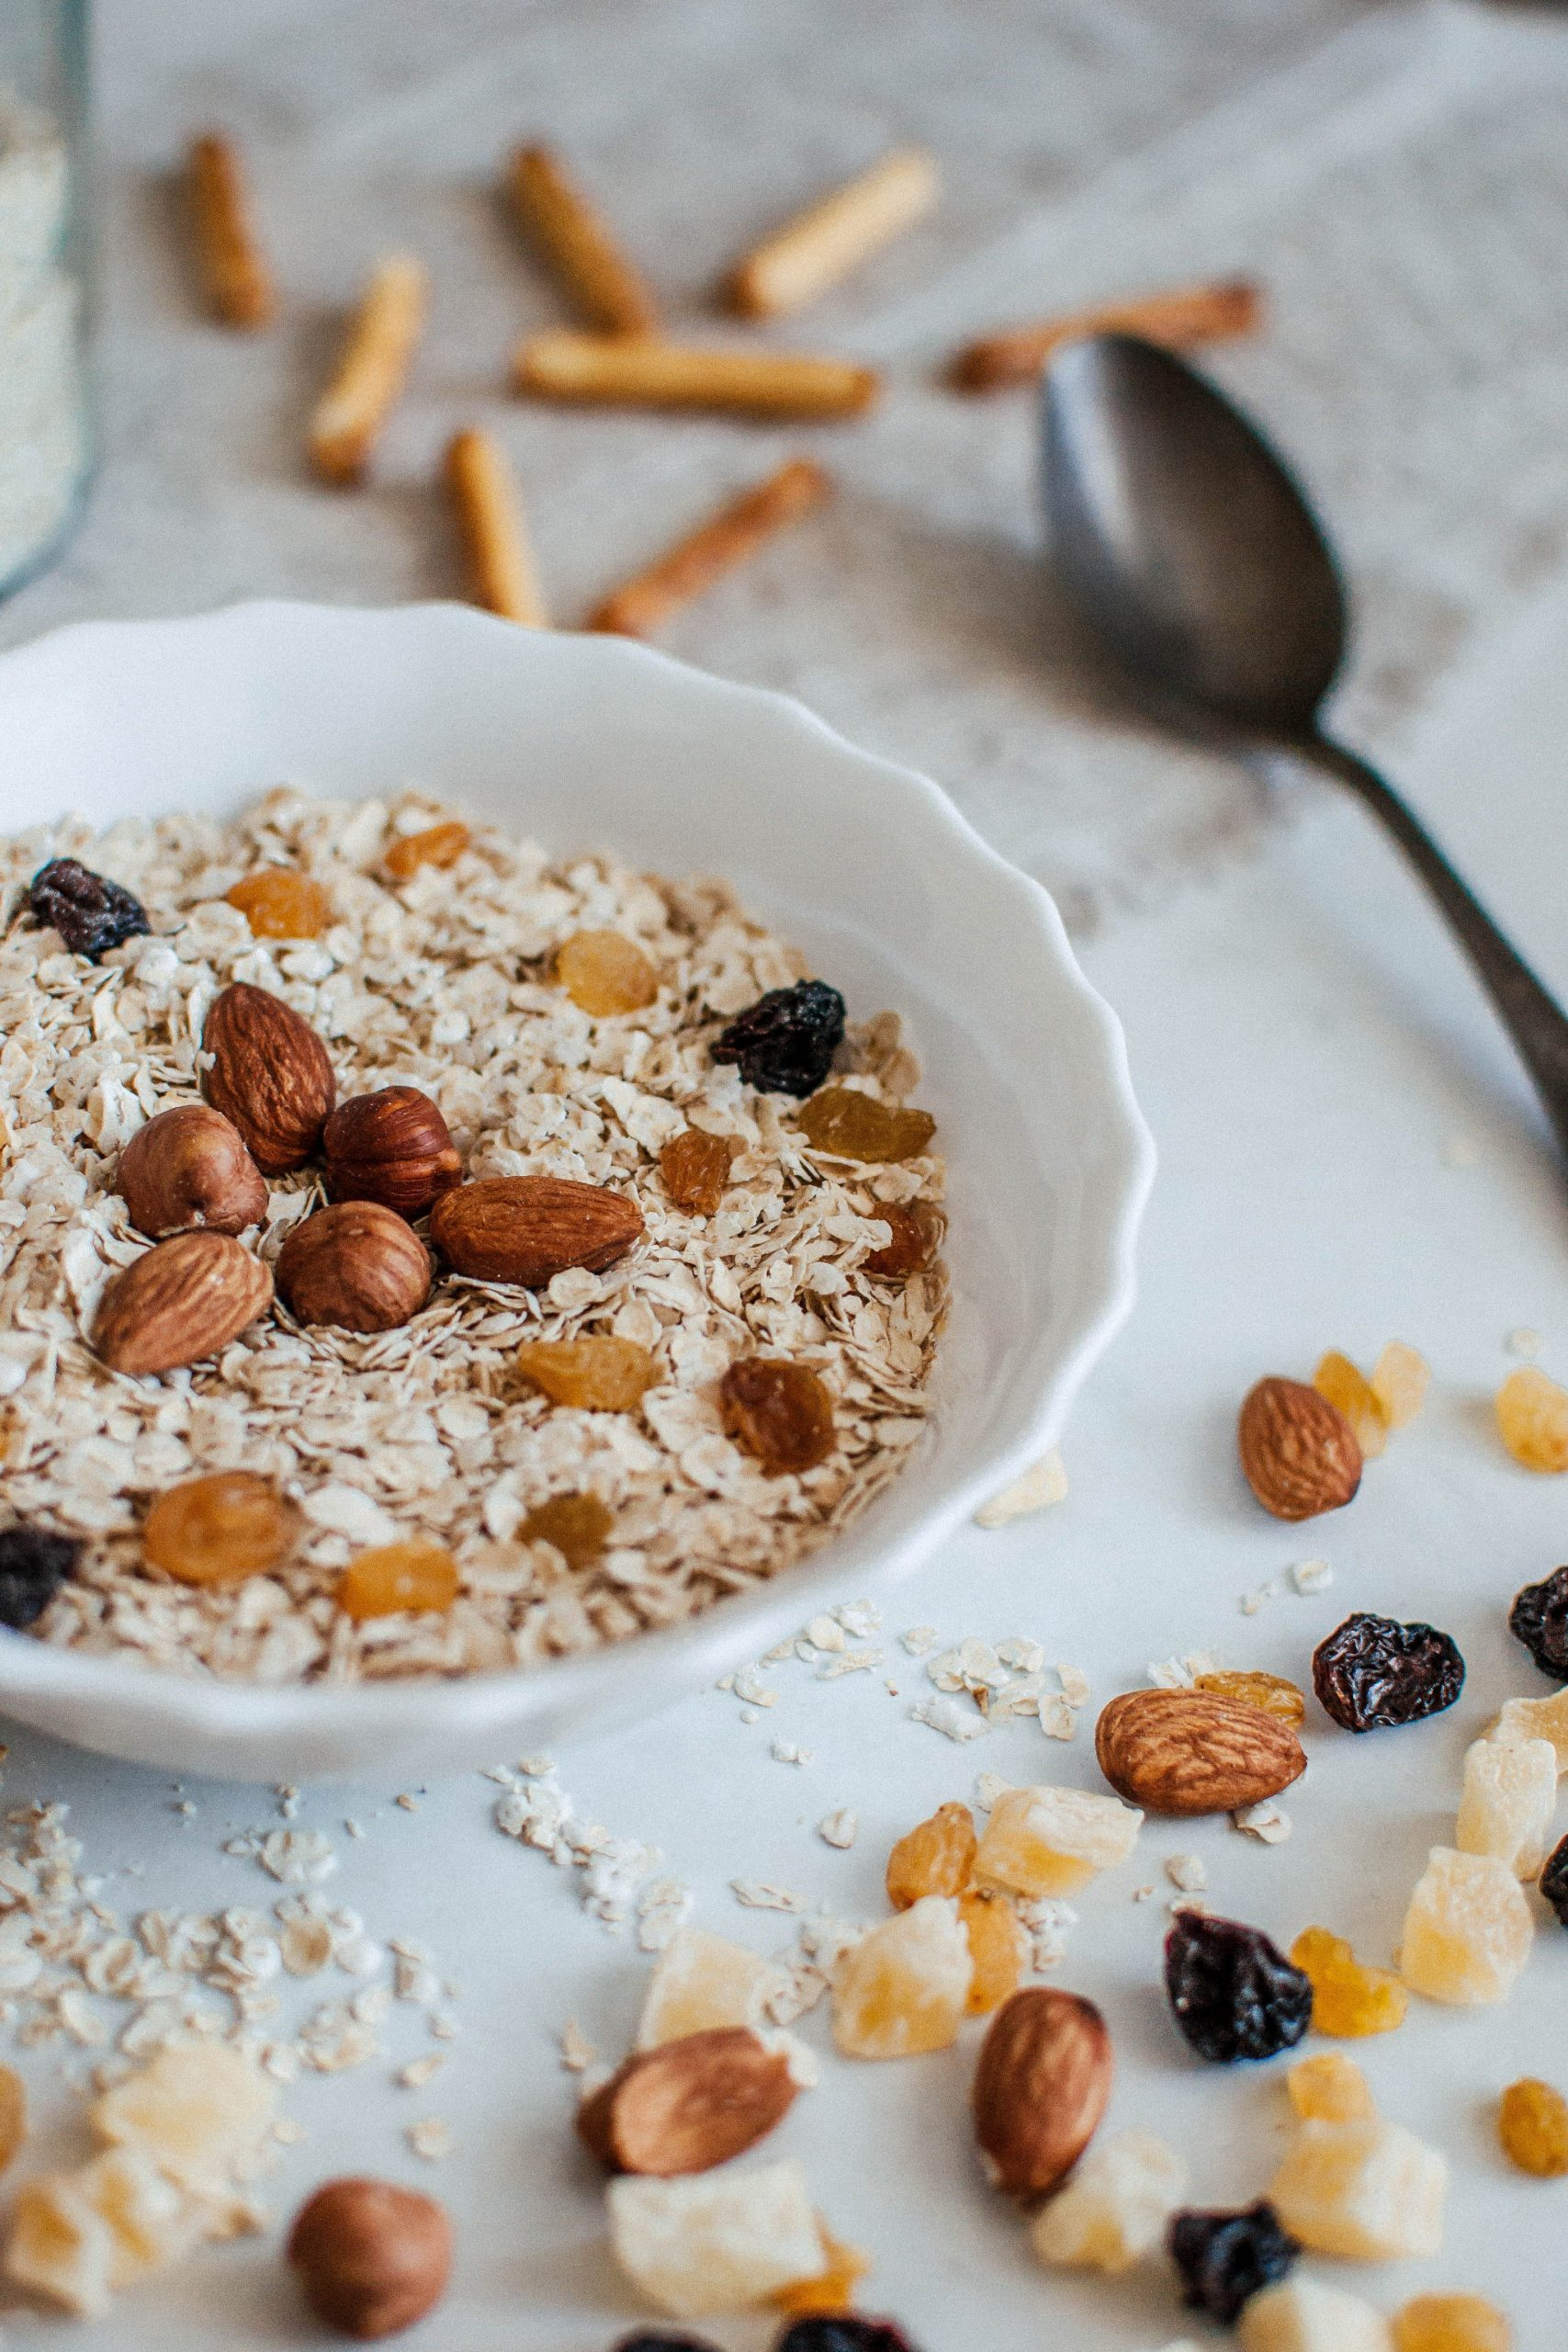 Oatmeal in a bowl with nuts and raisins scattered around, good nutrition